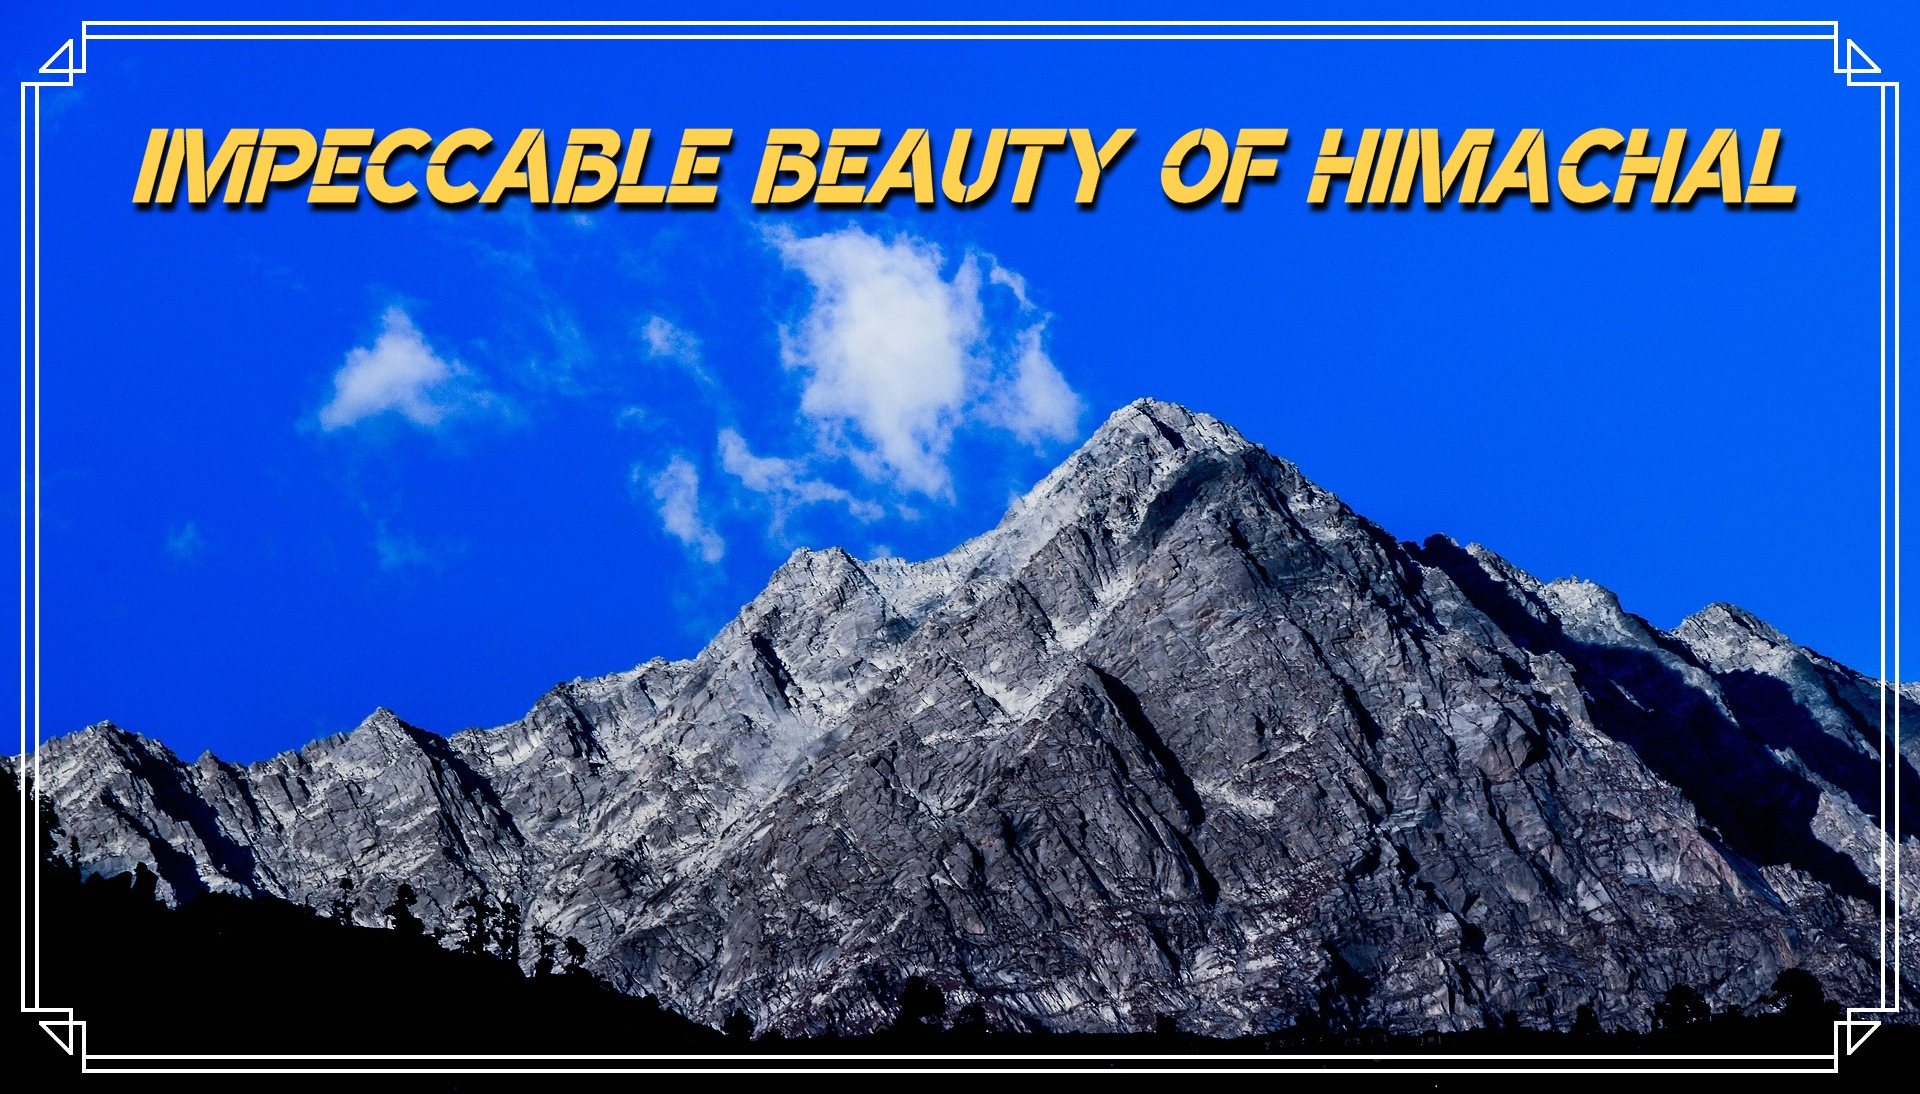 10 Amazing Facts About Himachal You Always Wanted to Know